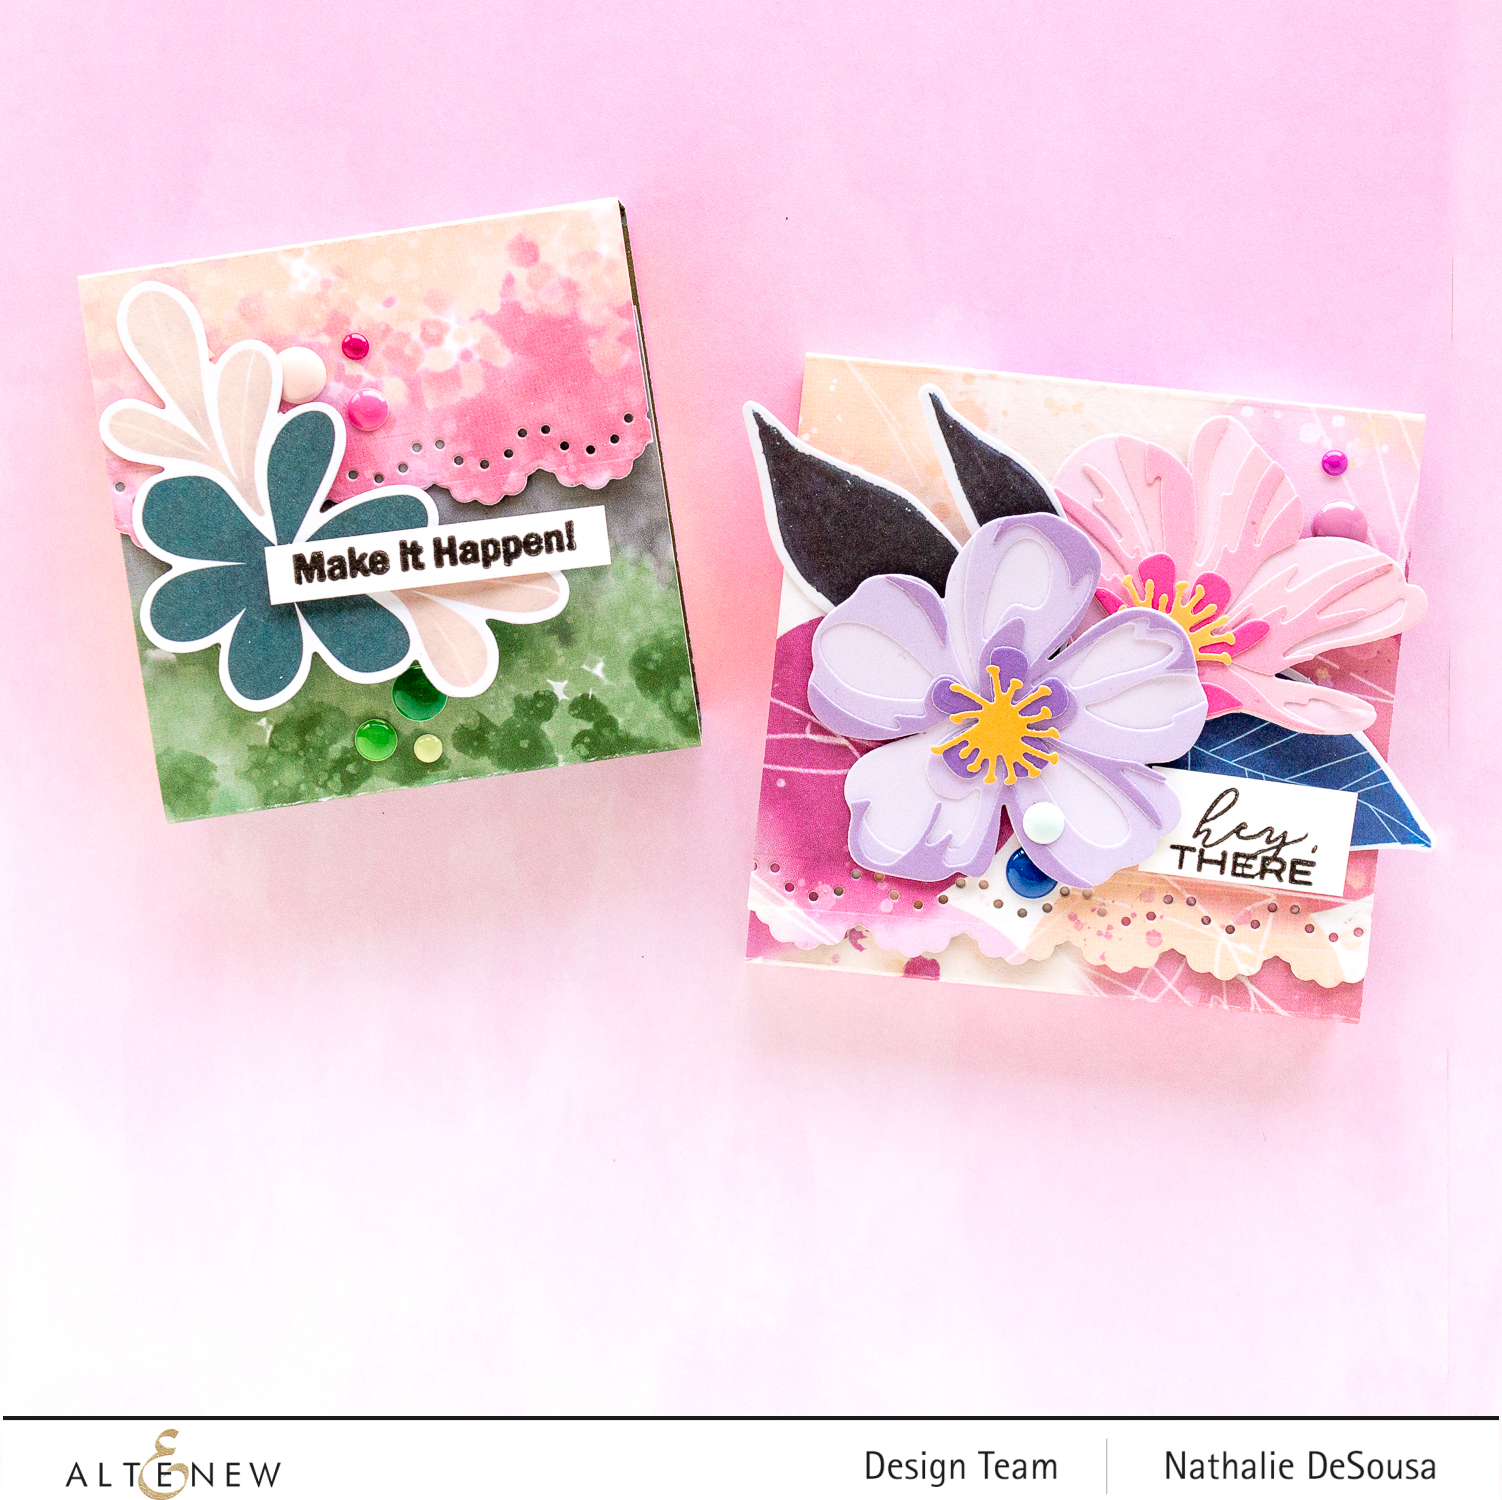 @altenew_ notepad covers with Wildflower collection by Nathalie DeSousa